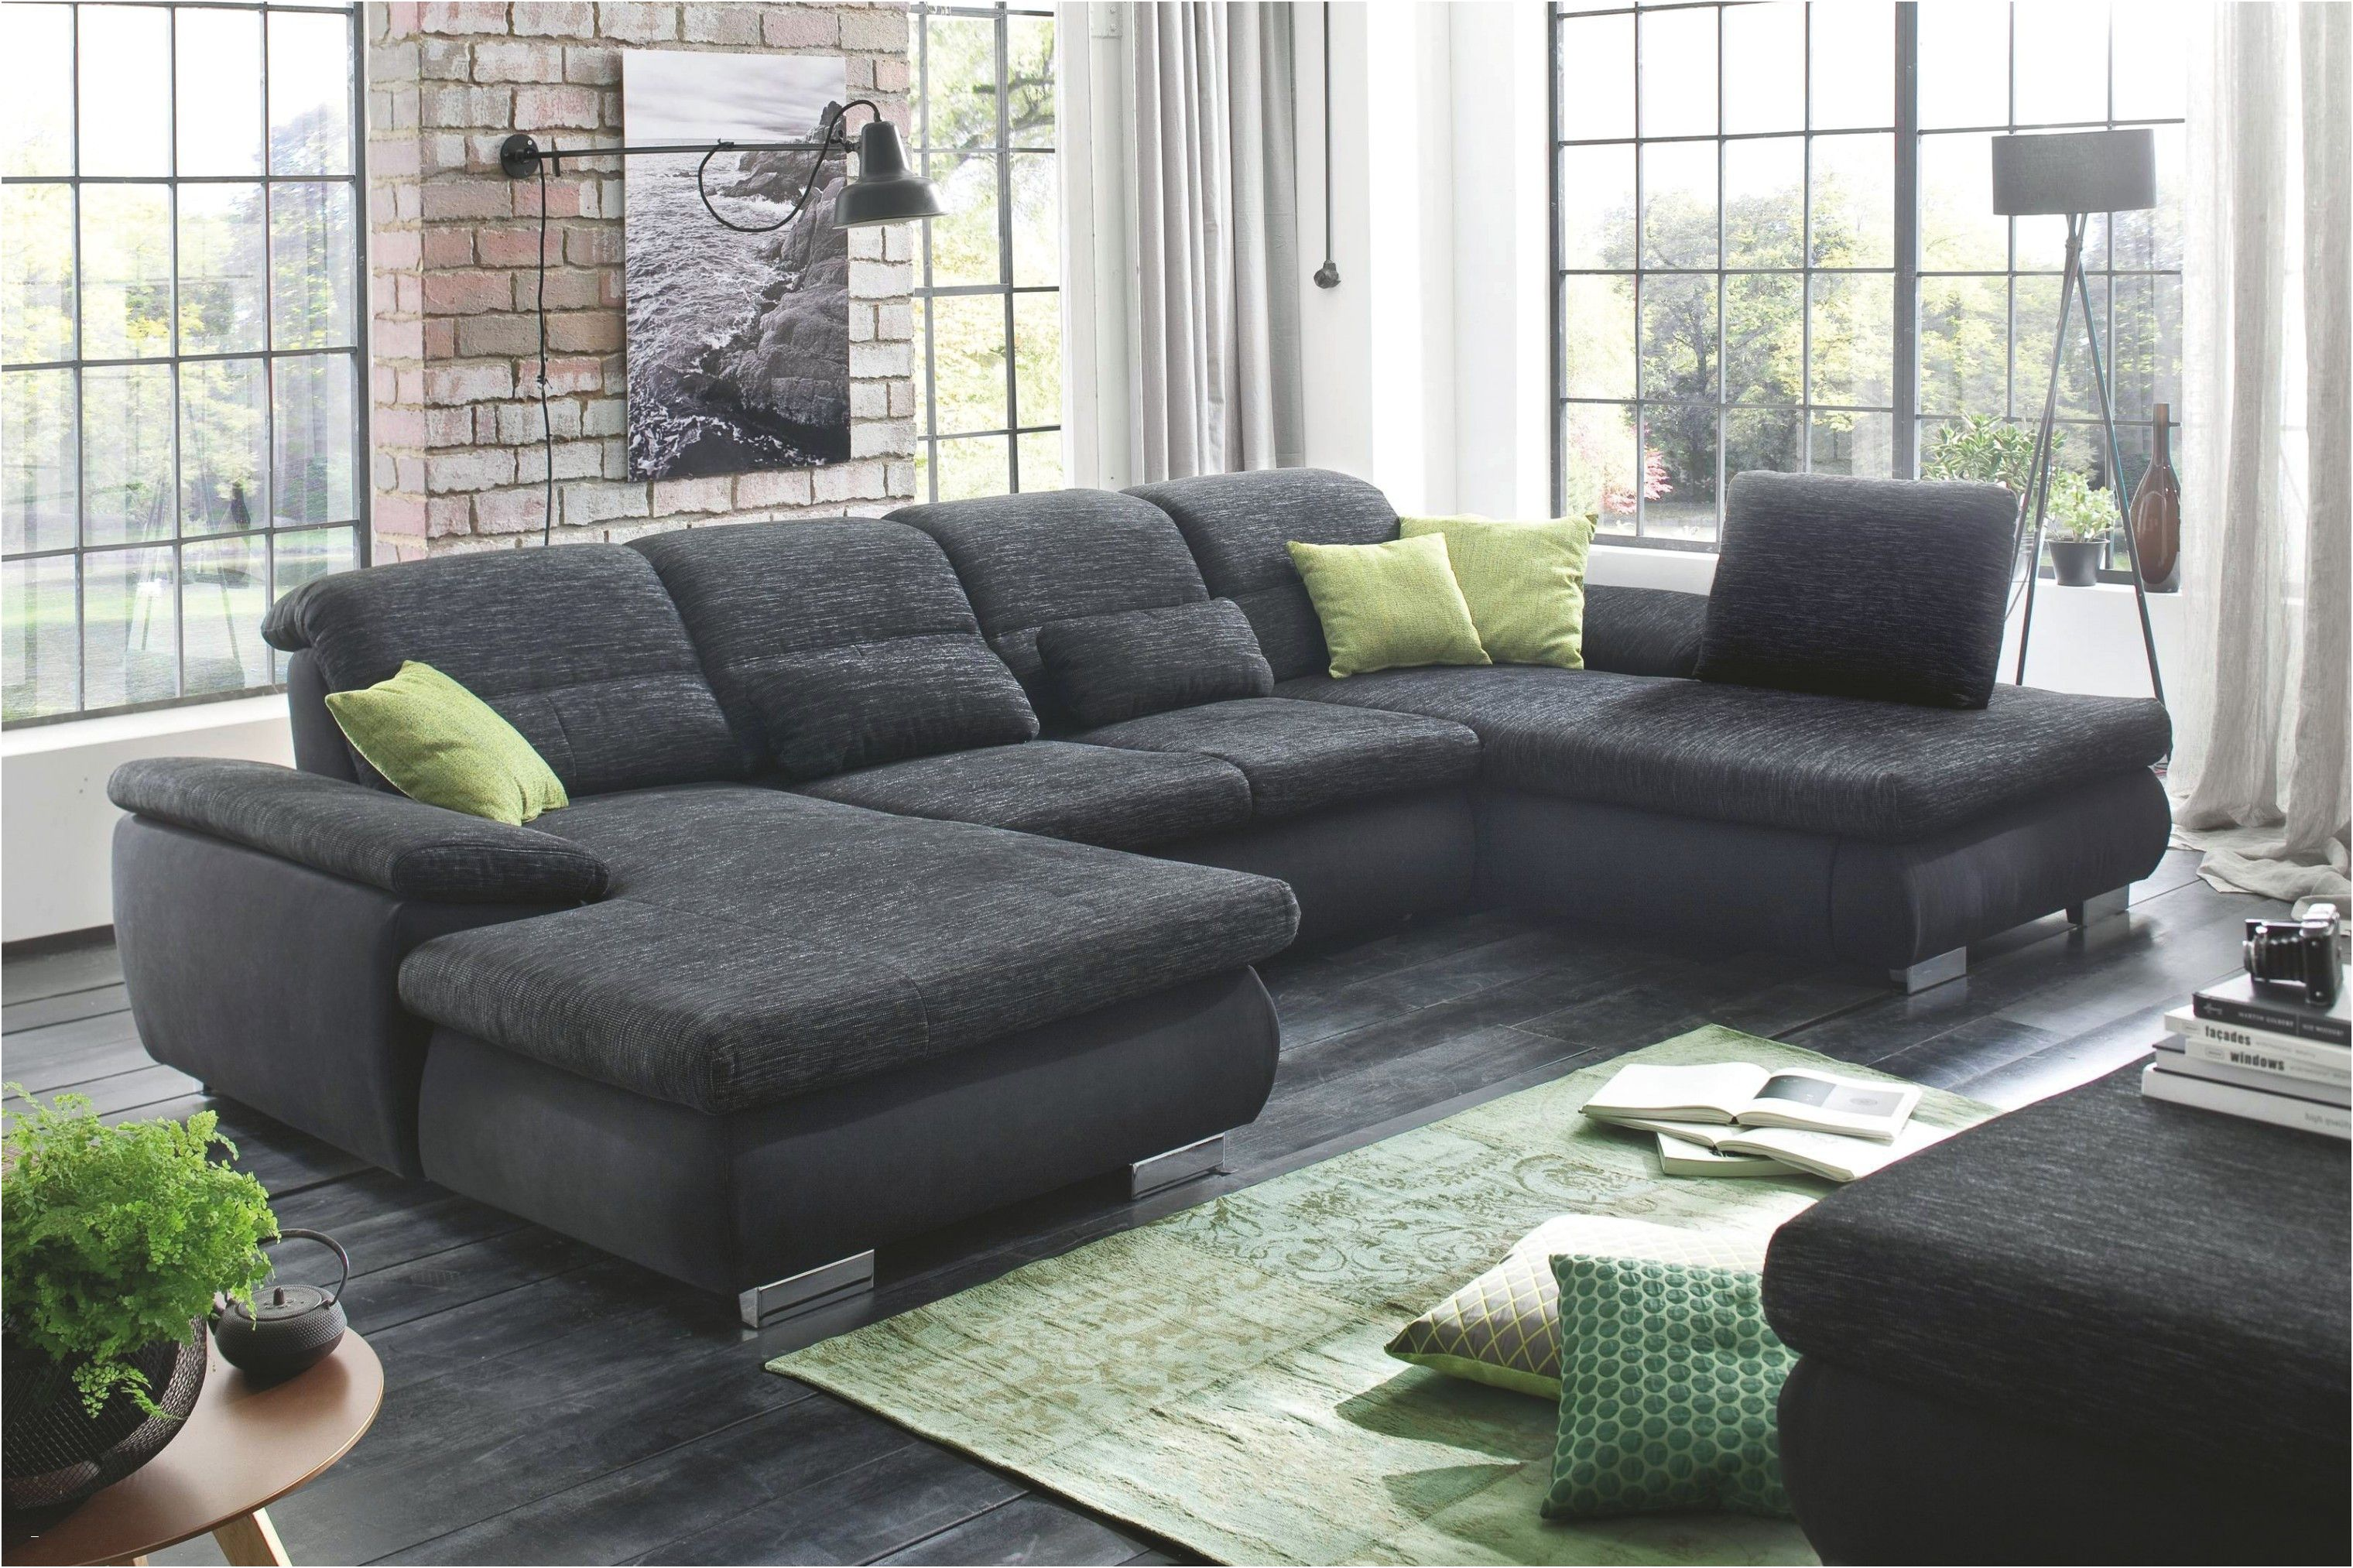 Couch L Form Glamorous Wohnlandschaft Xxl L Form Couch Möbel Sofa